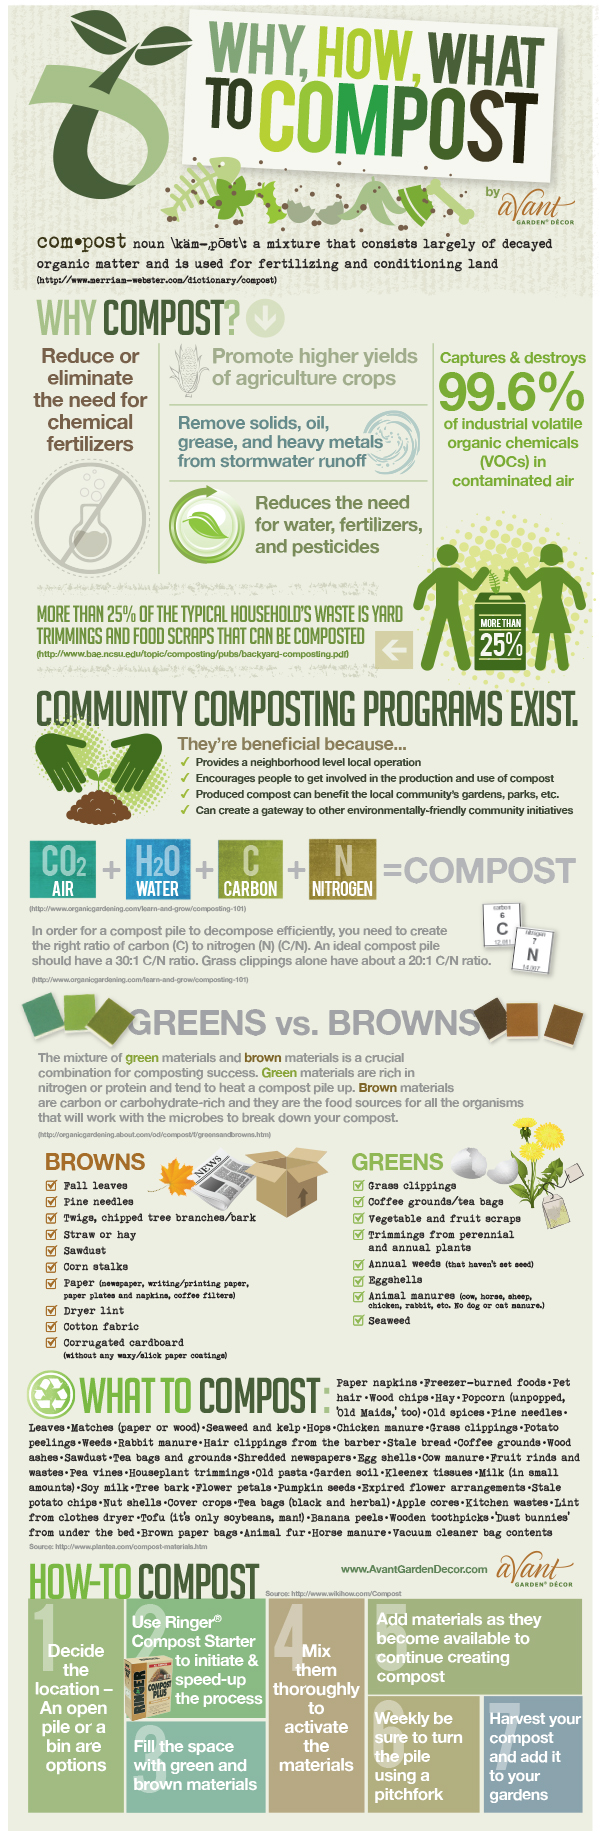 compost_infographic_5